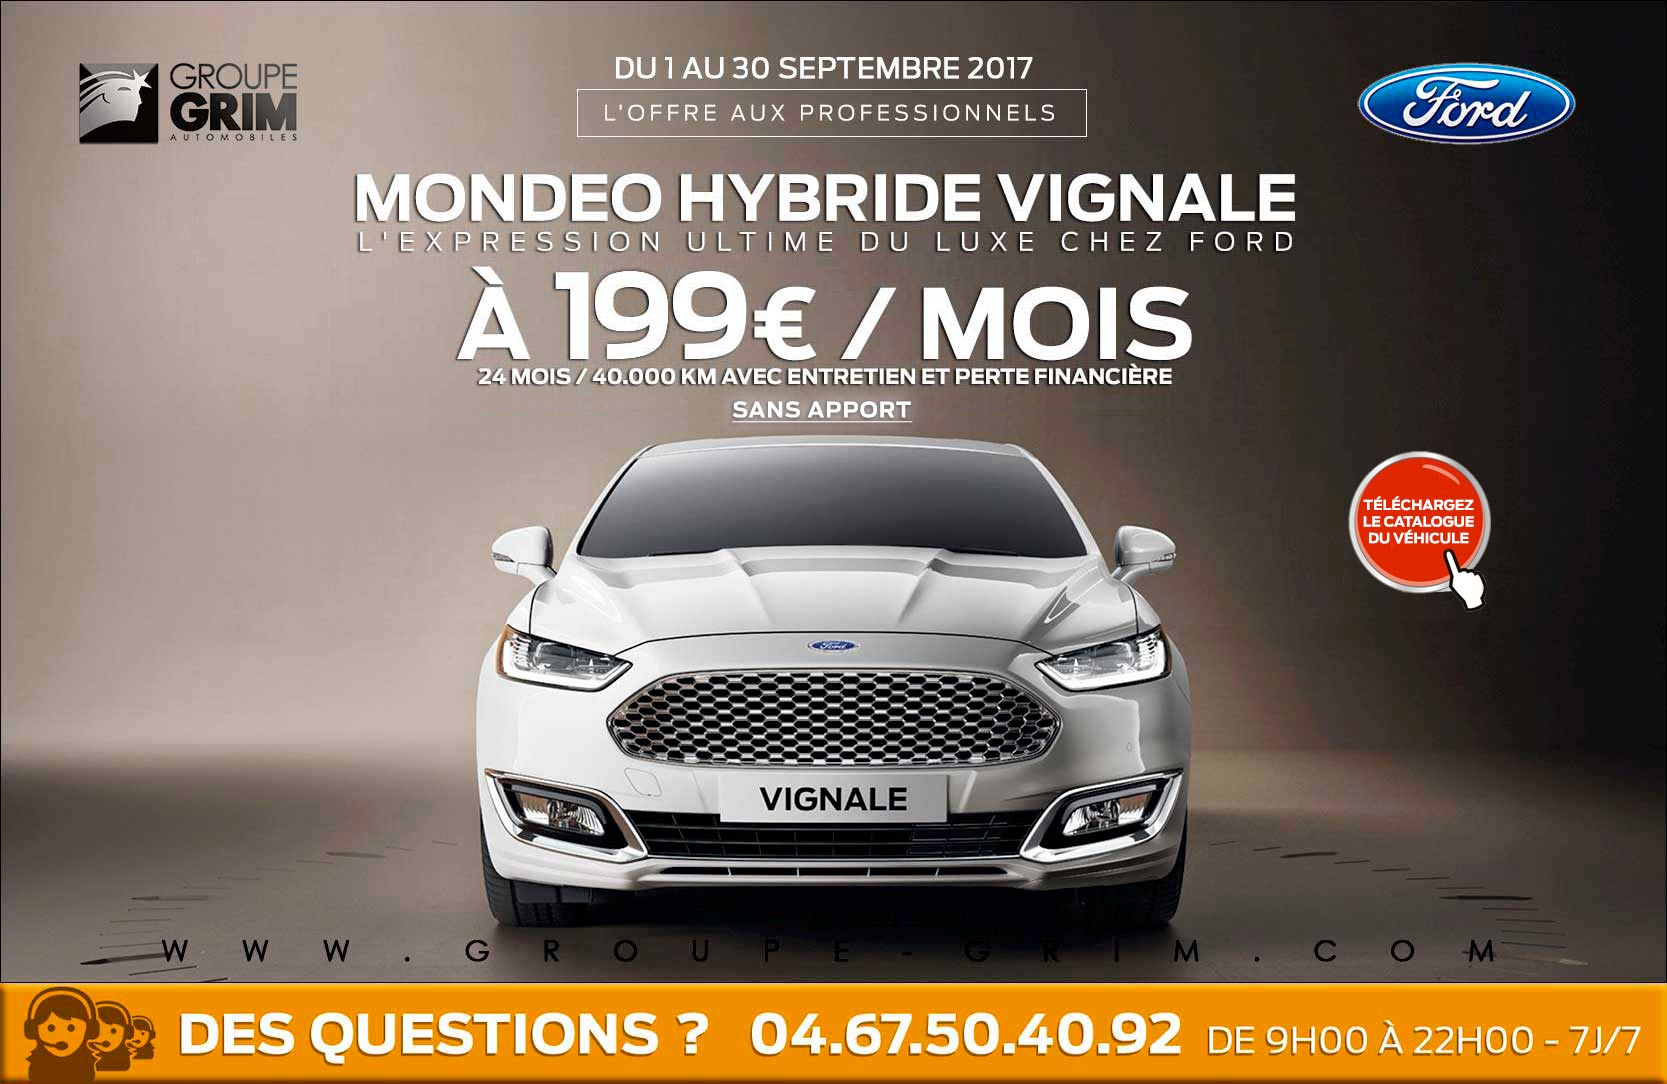 mondeo hybride 199 moisvignale 1 1 2 groupe grim ford. Black Bedroom Furniture Sets. Home Design Ideas